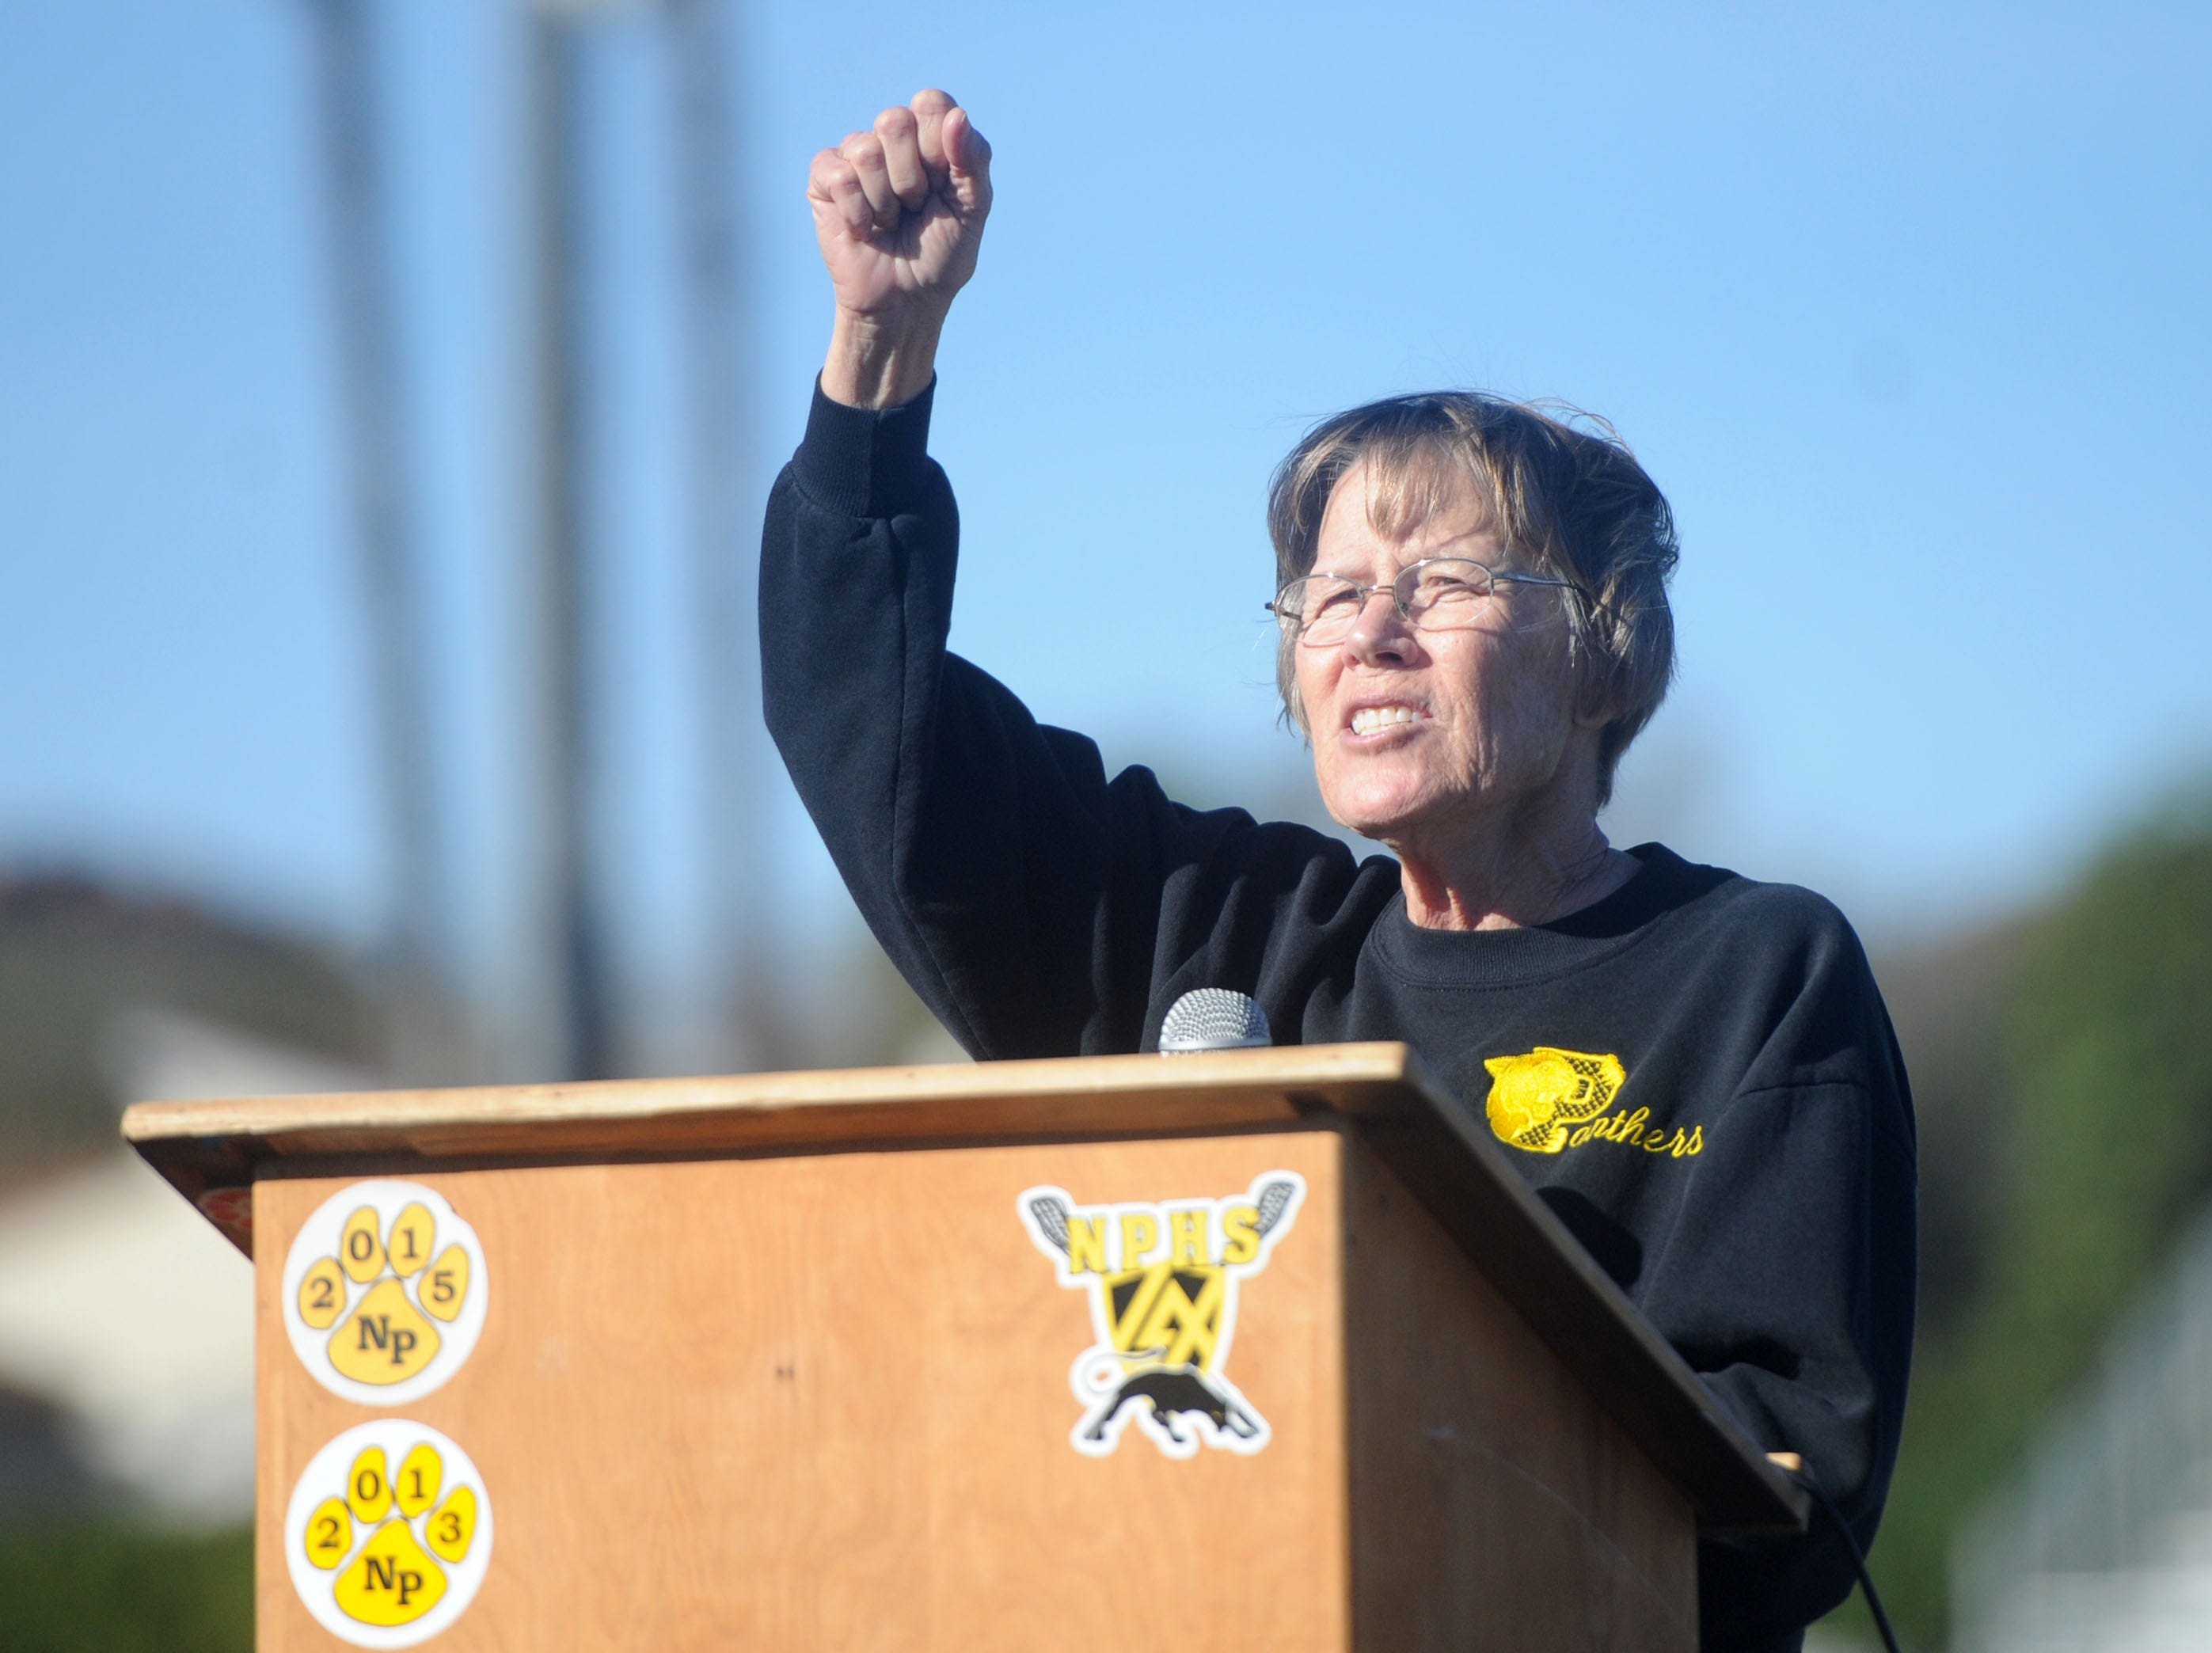 Berta Hurley, wife of George Hurley, speaks at the tribute for her husband Saturday at Newbury Park High.